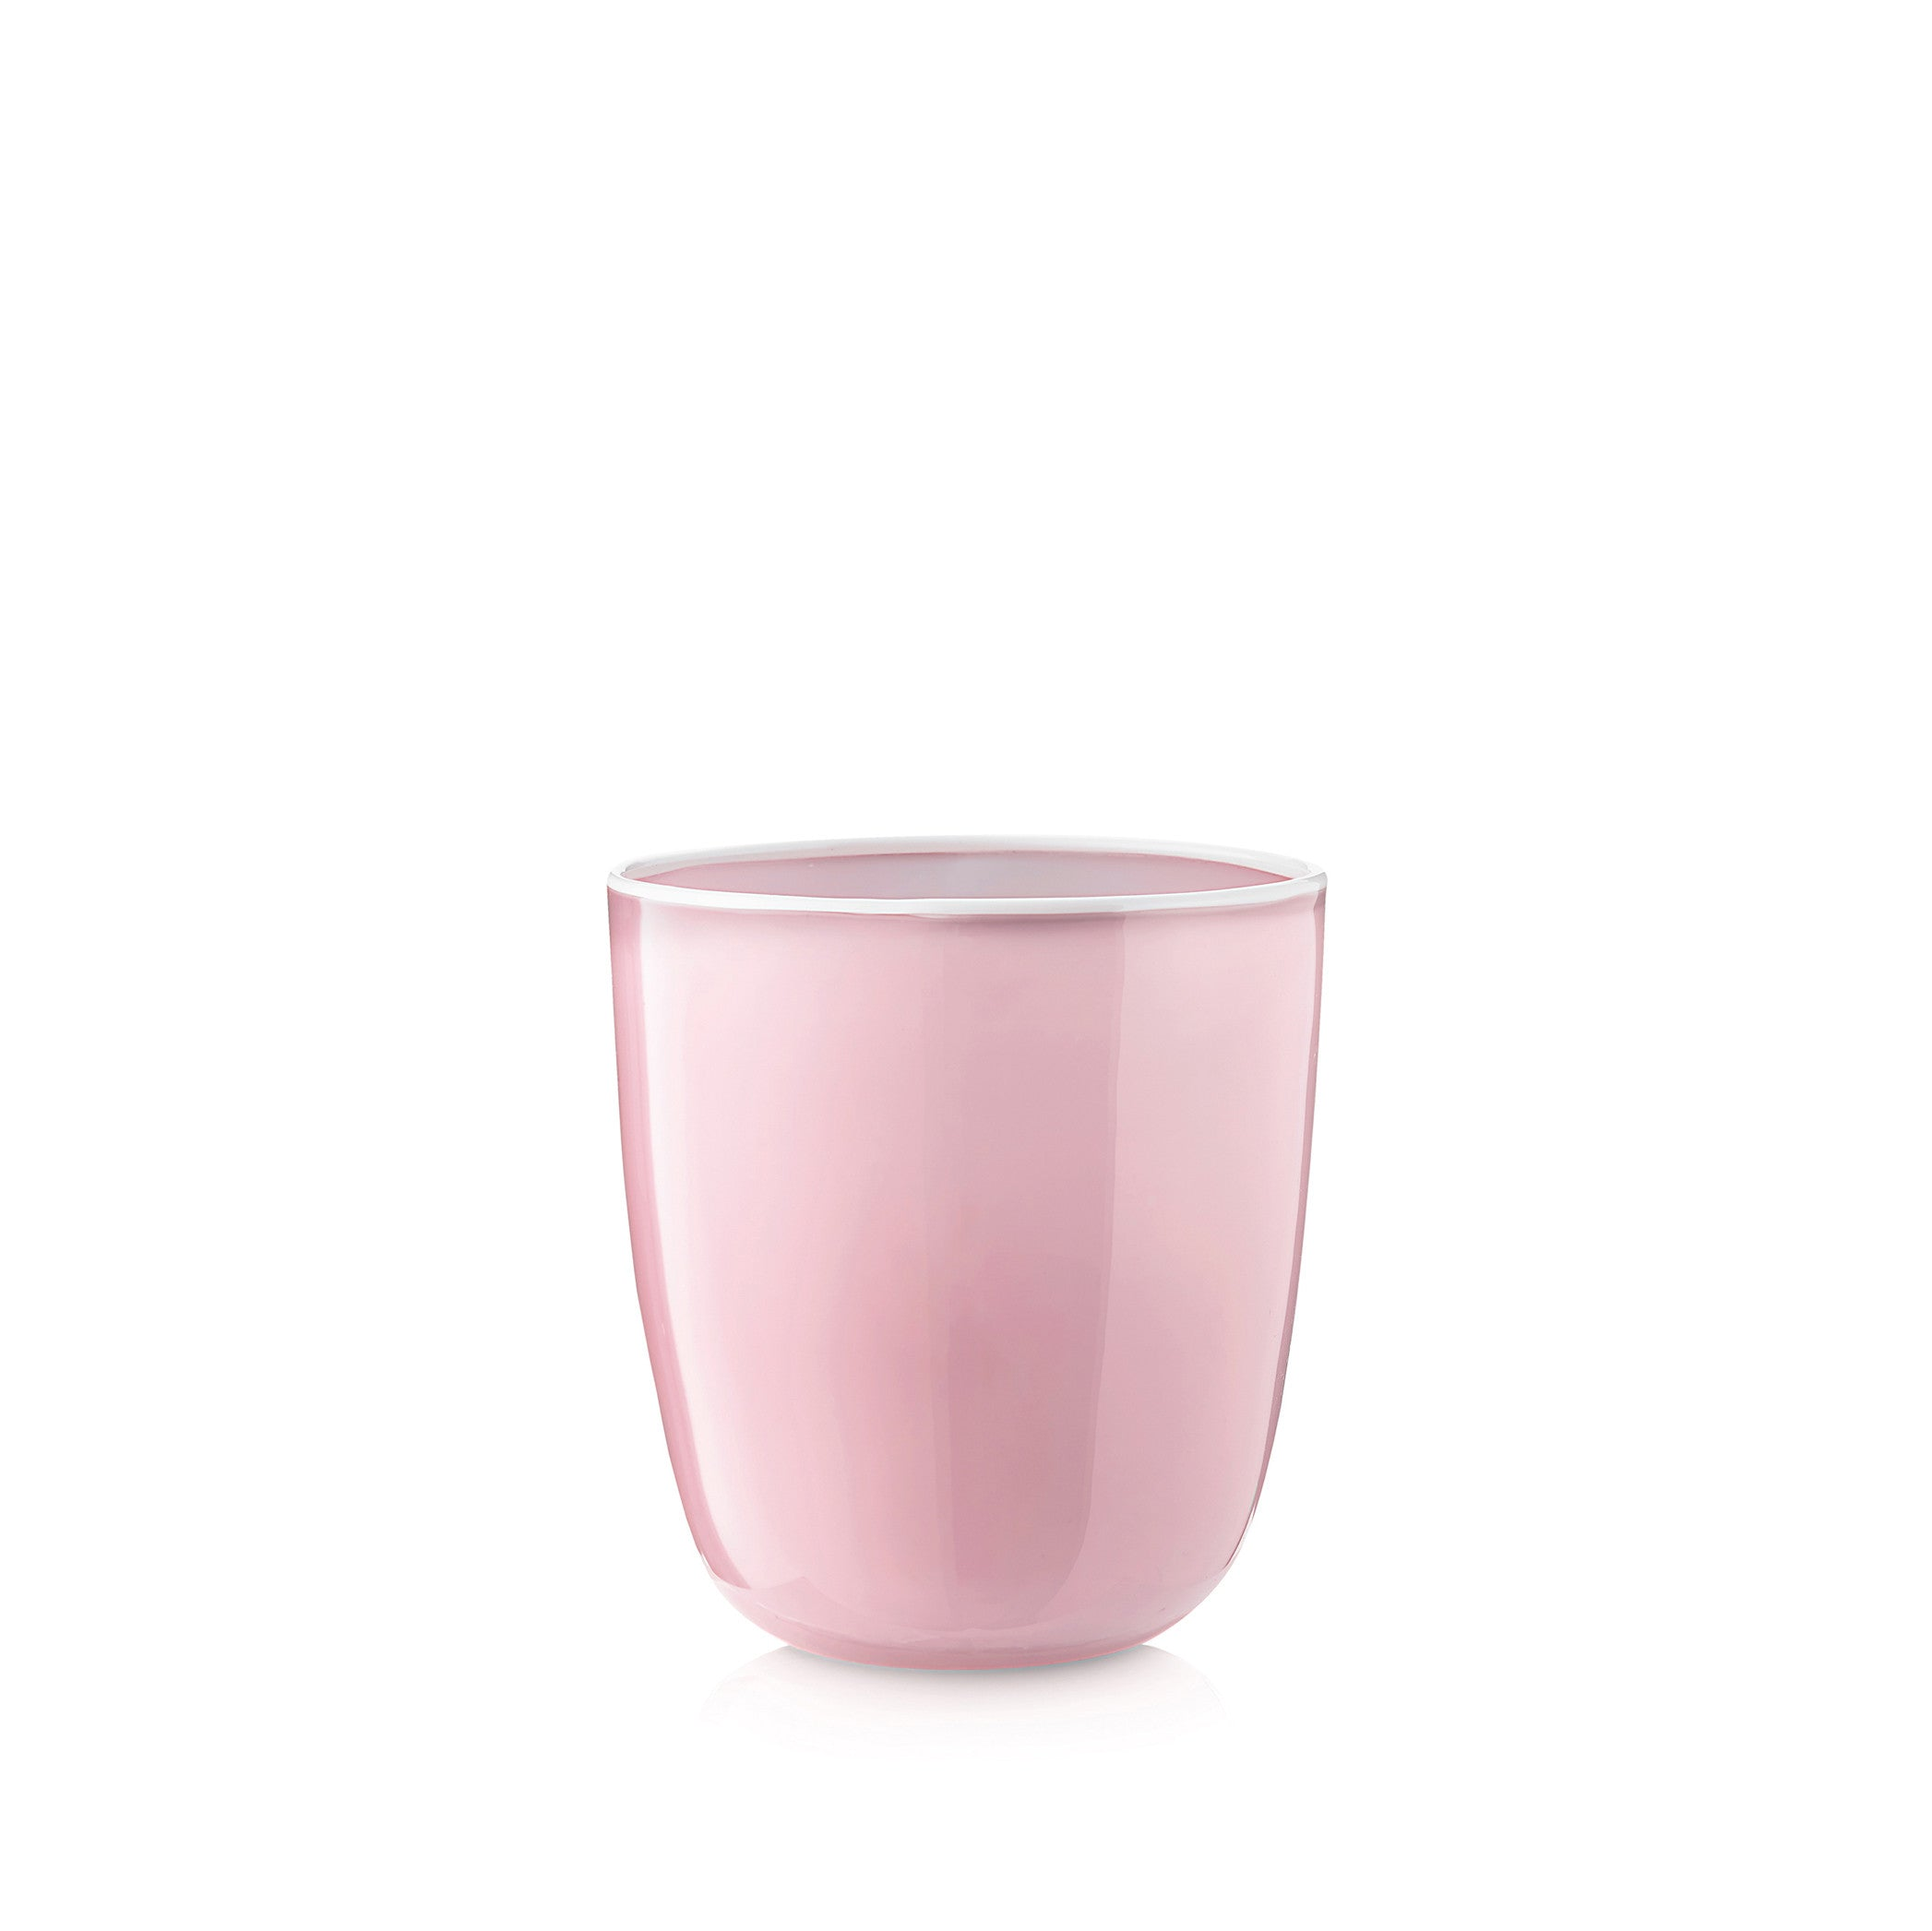 Handblown Bumba Glass in Rose Pink